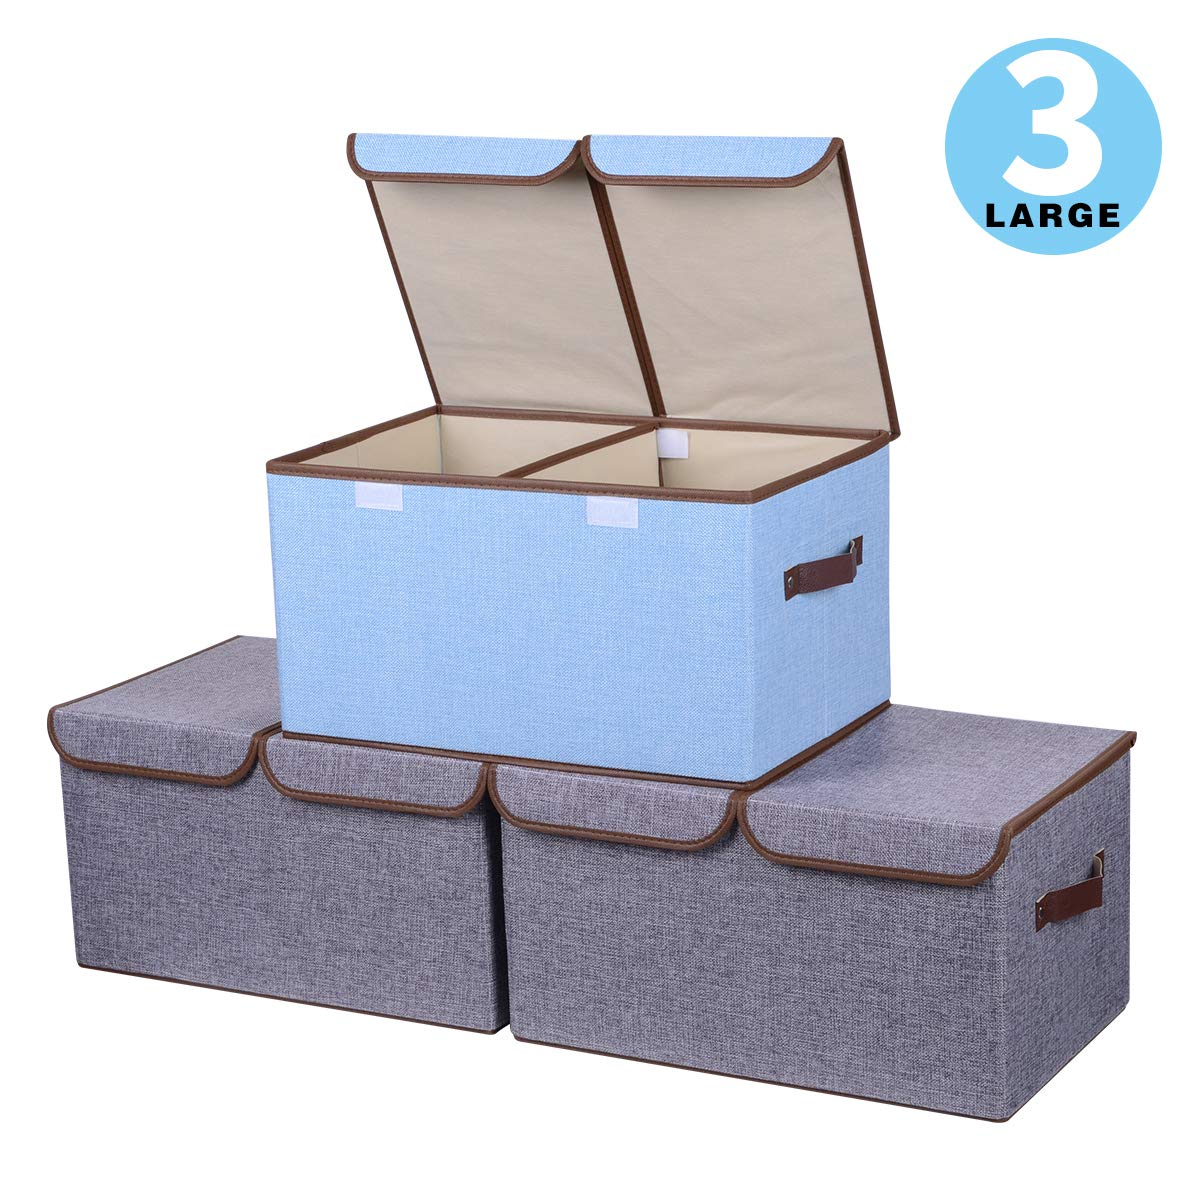 3 x fabric storage boxes